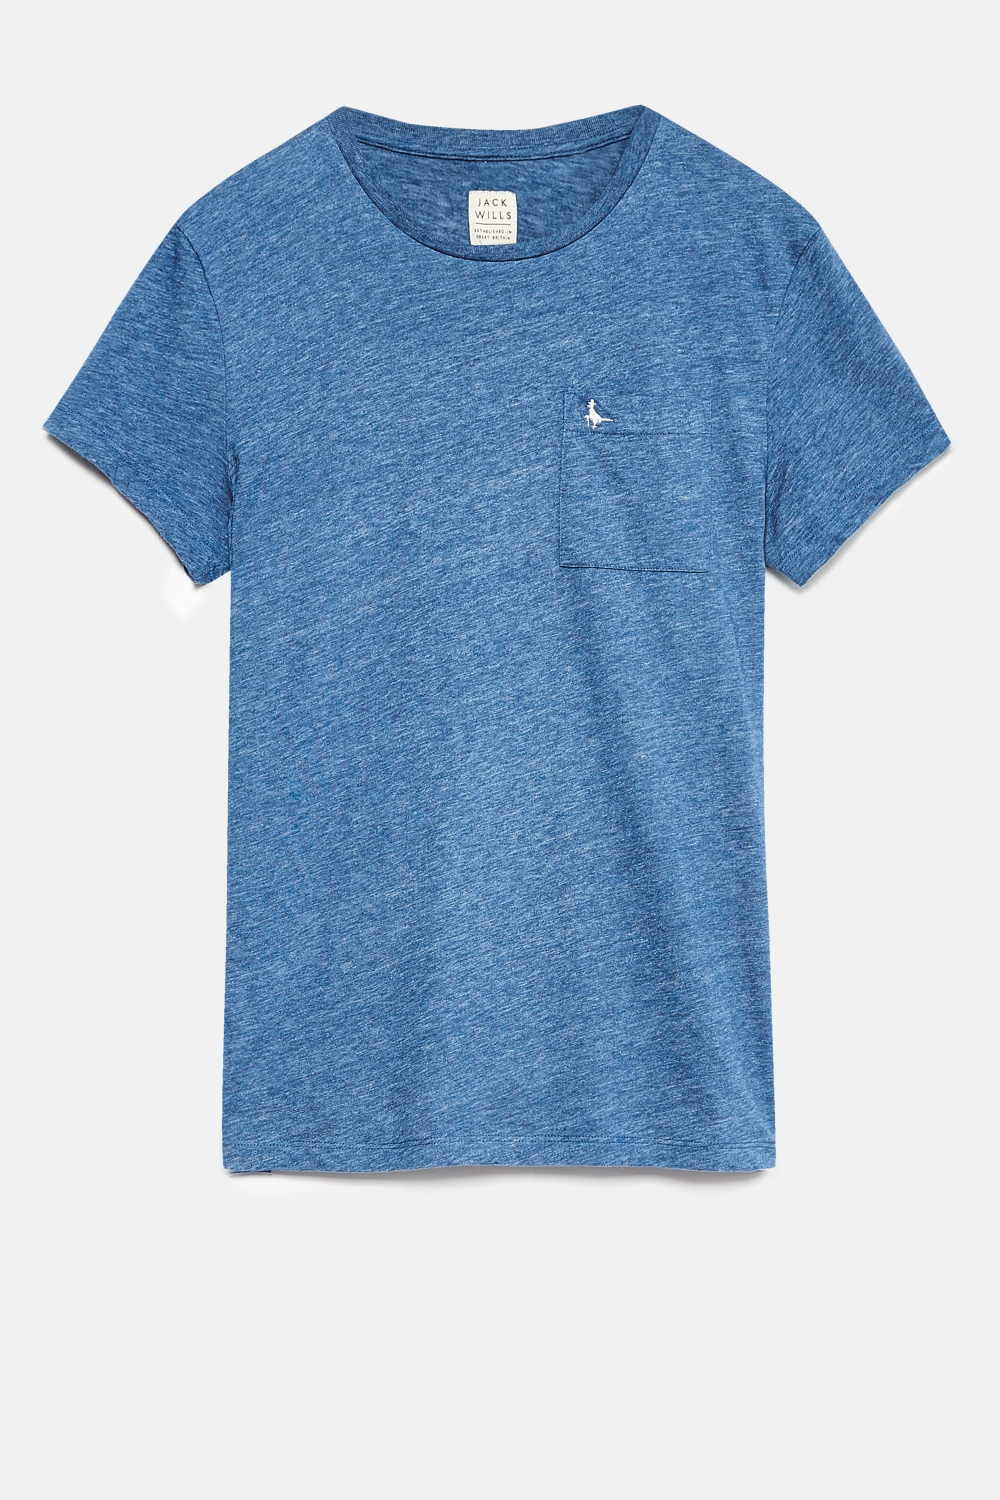 Jack Wills Blue AYLEFORD T-SHIRT